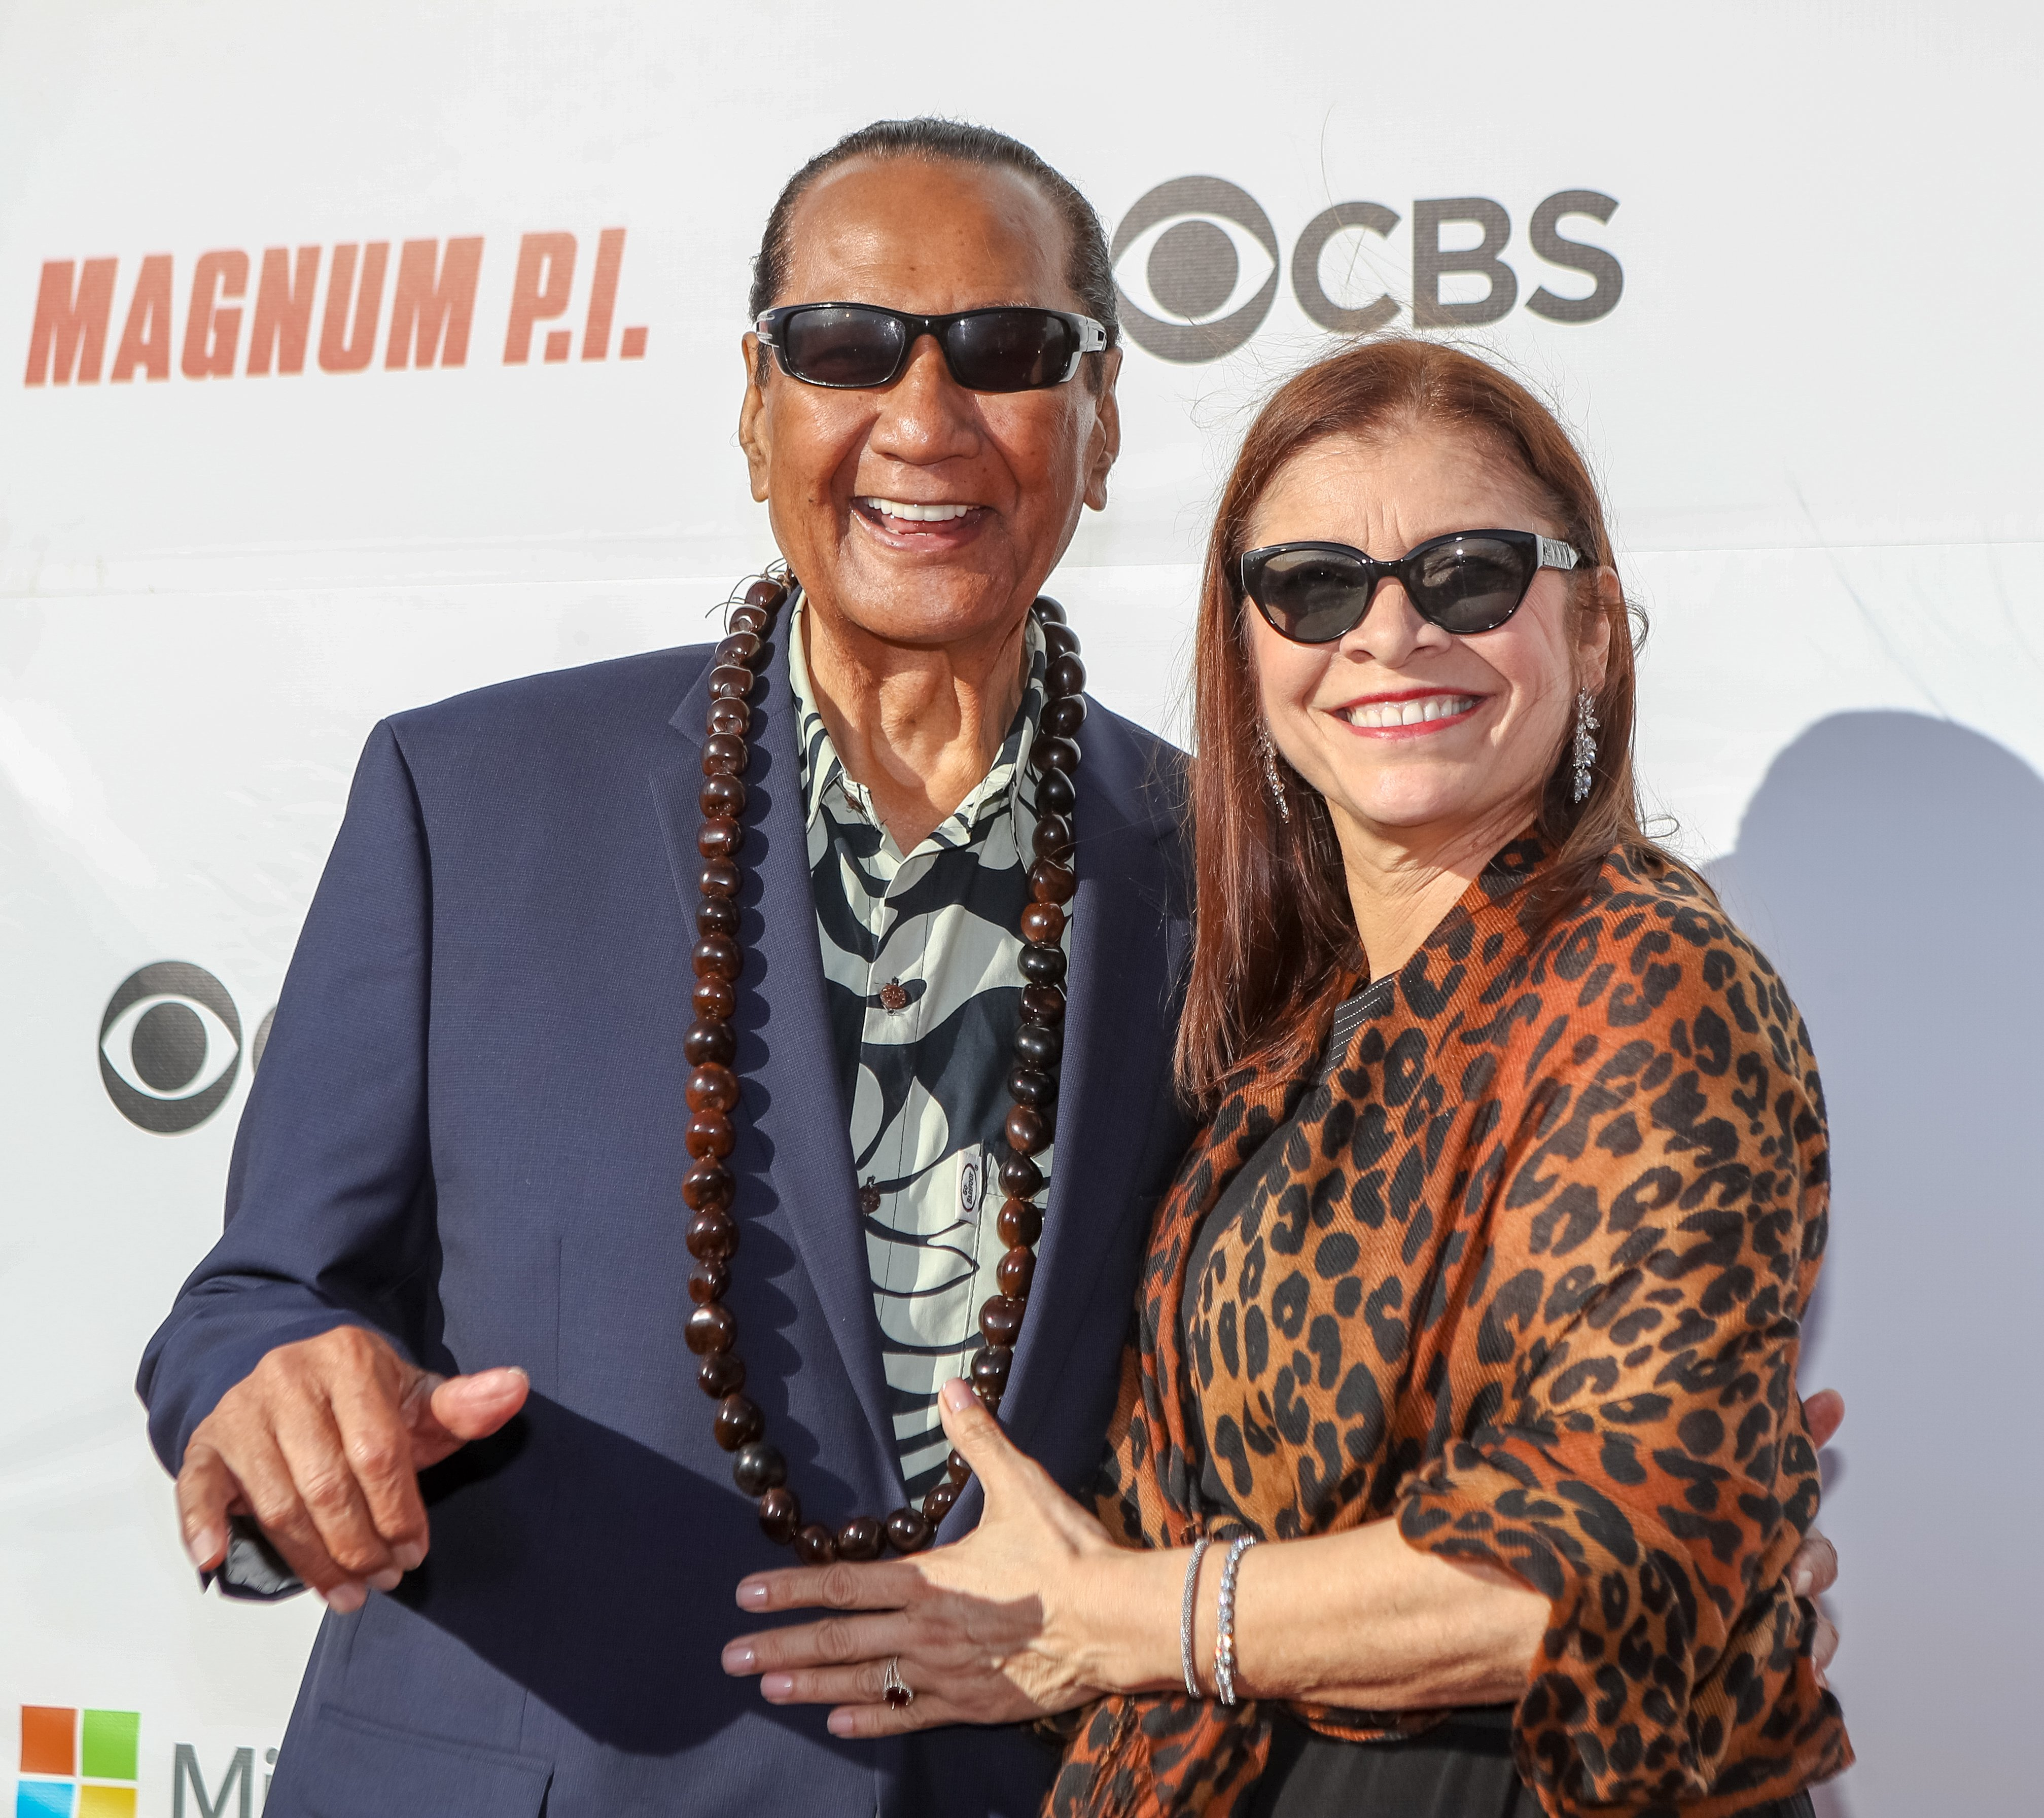 """Al Harrington and his wife, Rosa, at the Sunset on the Beach event celebrating the 50th anniversary of """"Hawaii Five-0"""" on September 16, 2018, in Waikiki, Hawaii 